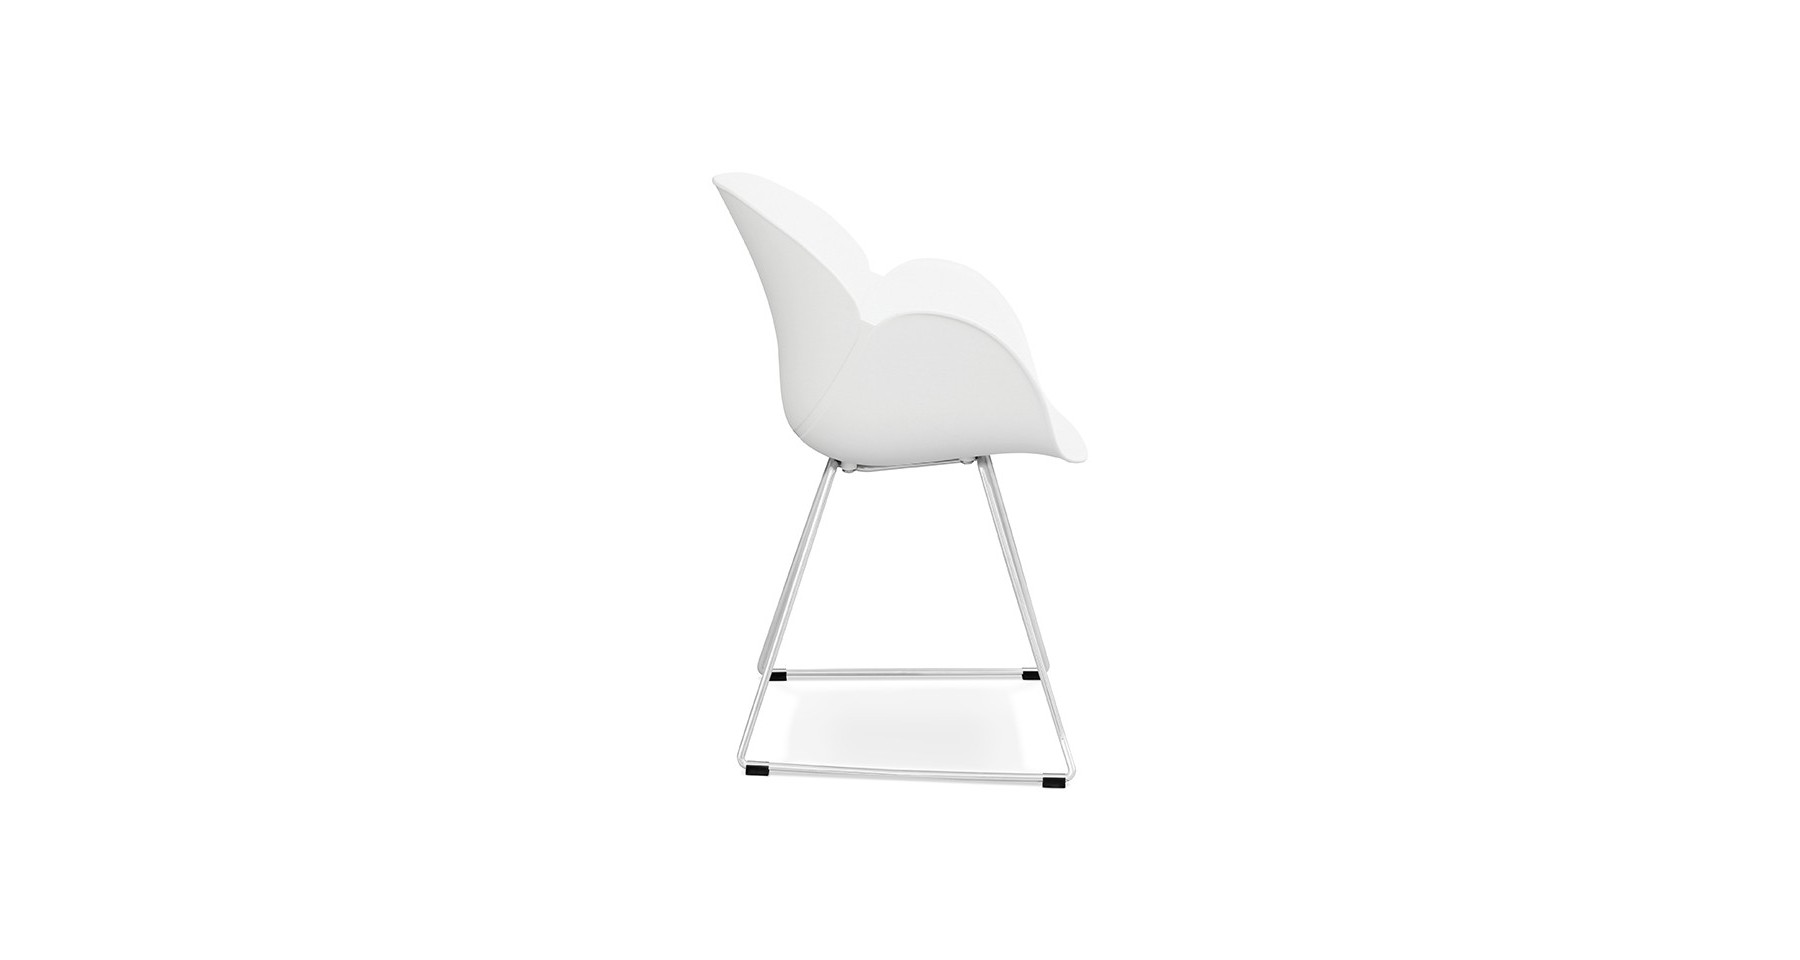 Chaise Blanche Scandinave Pied Metal Rosson